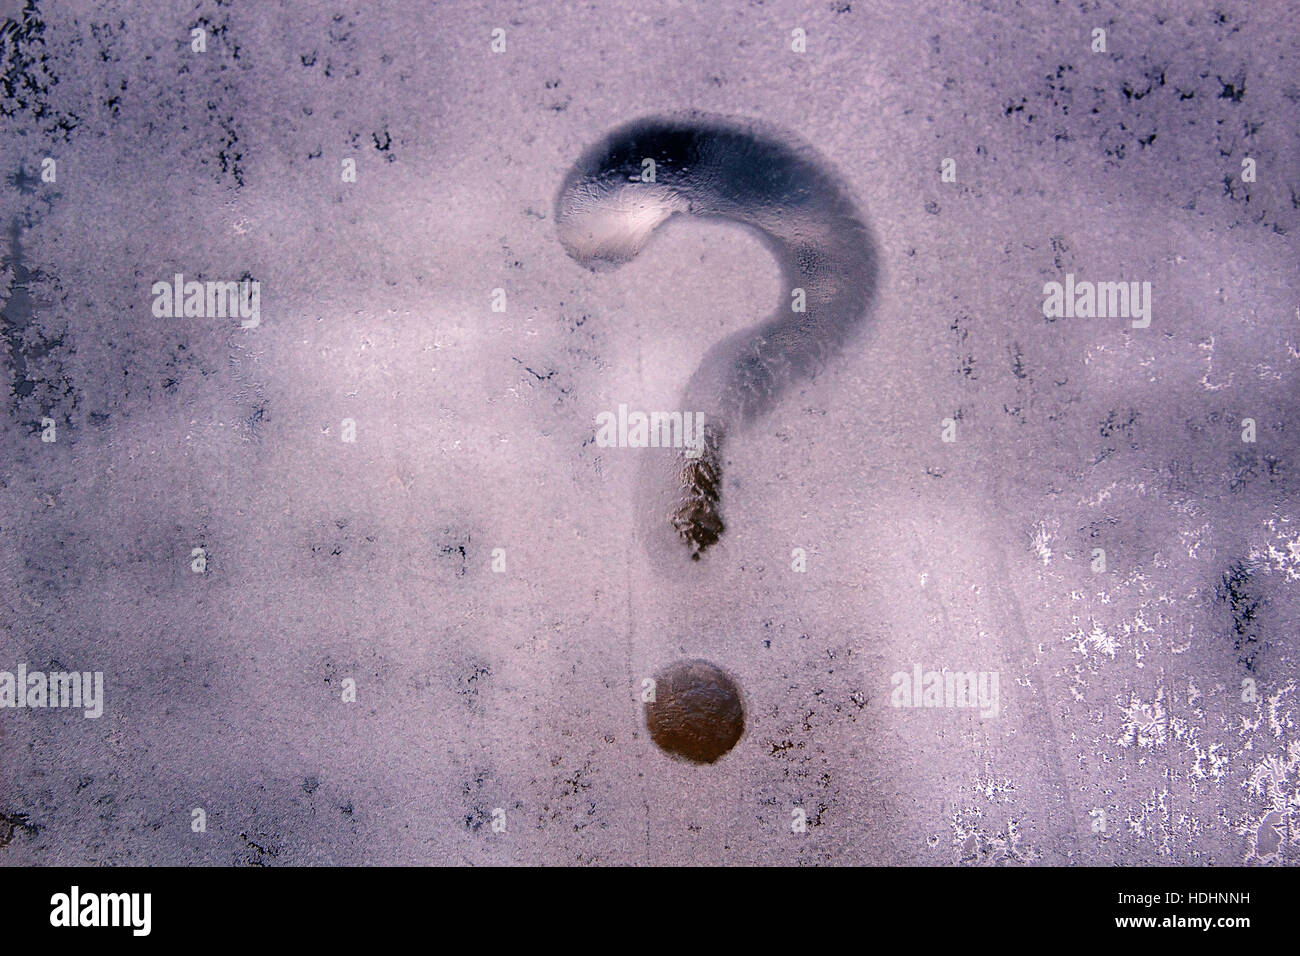 The question mark on frosted glass window - Stock Image